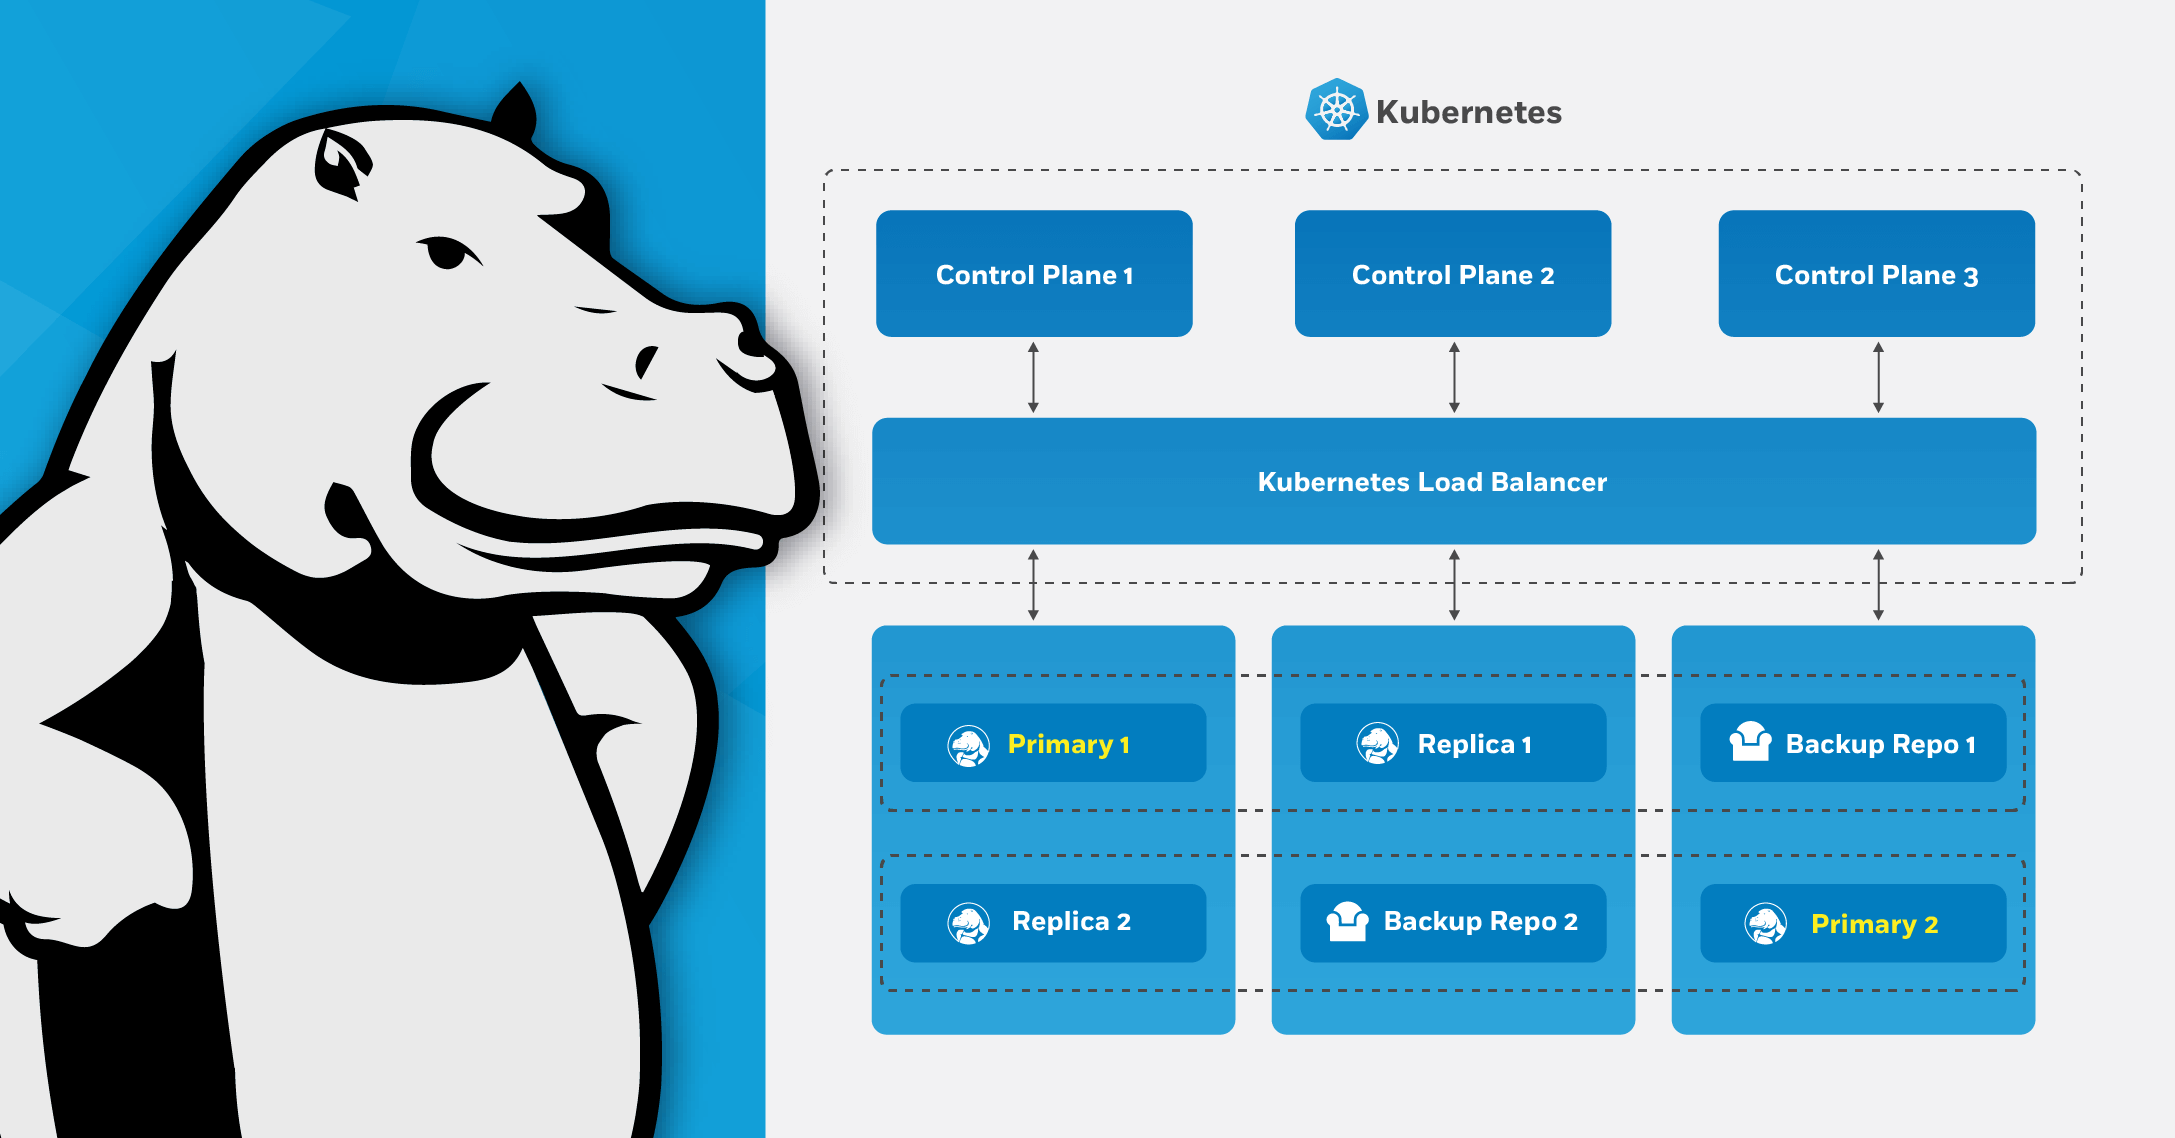 The Kubernetes load balancer works effectively to manage communication and traffic between the Kubernetes API and your PostgreSQL primary and replica databases.